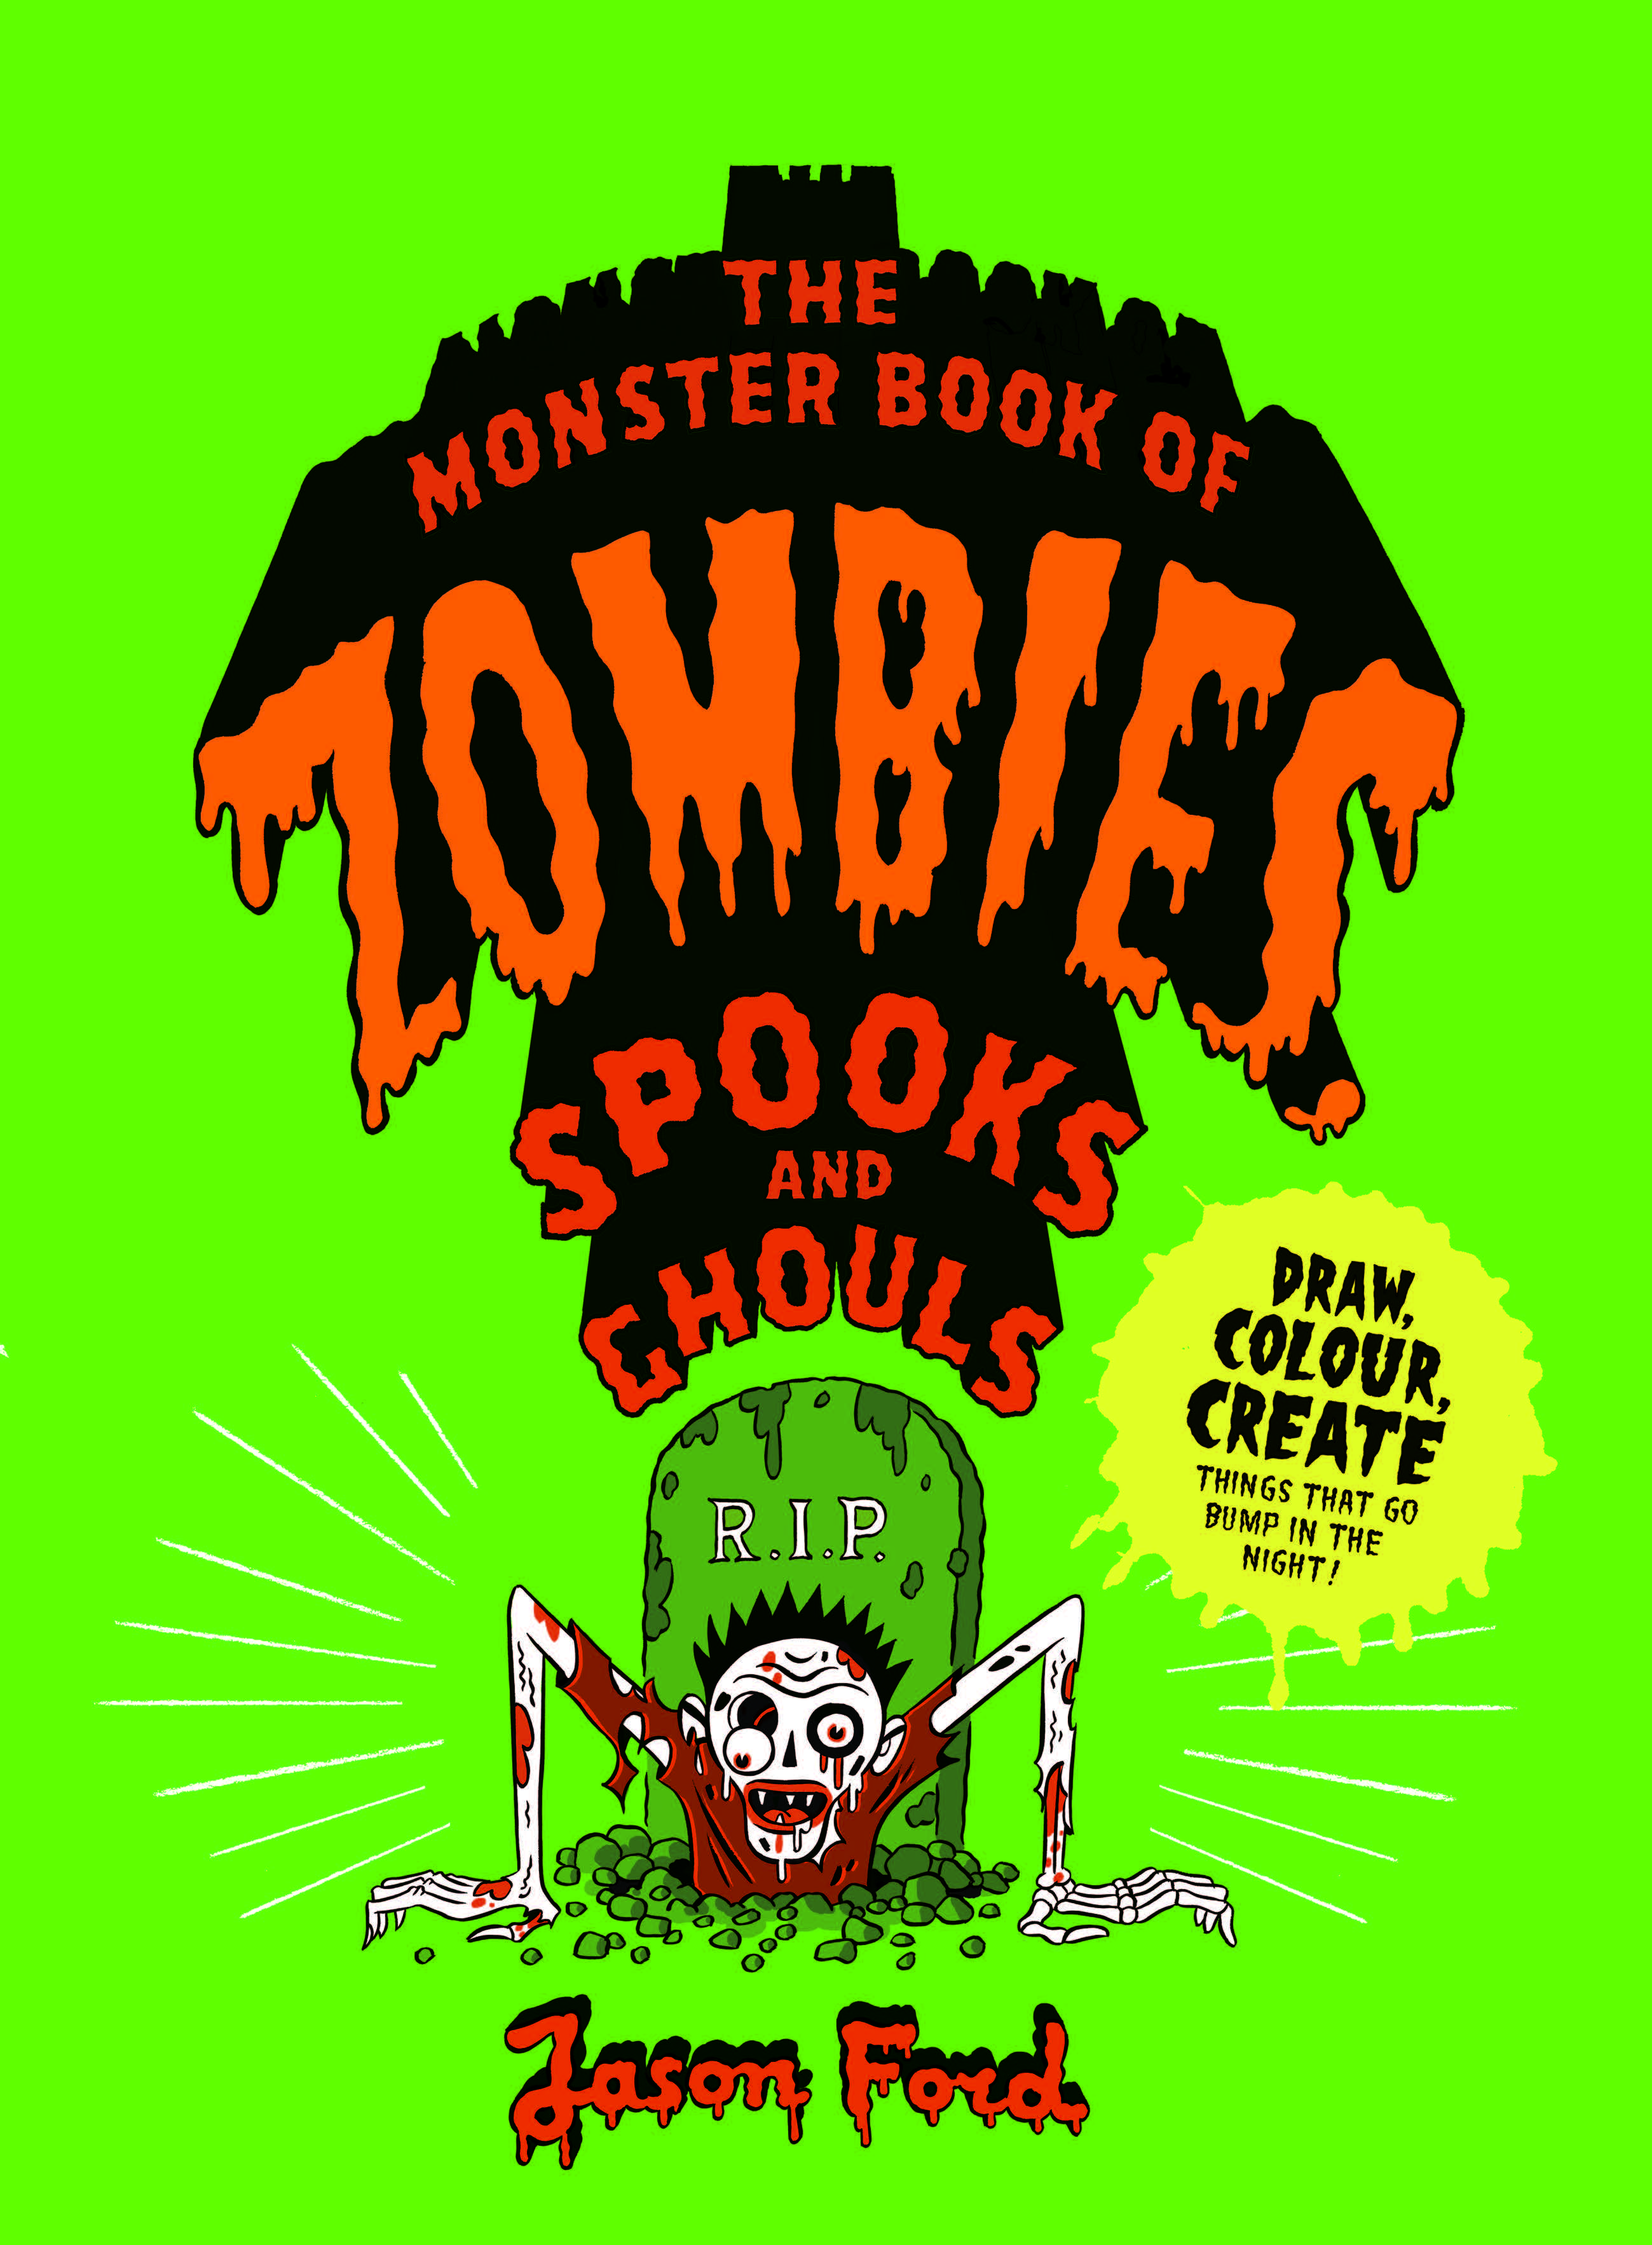 The Monster Book of Zombies, Spooks and Ghouls - Product Thumbnail